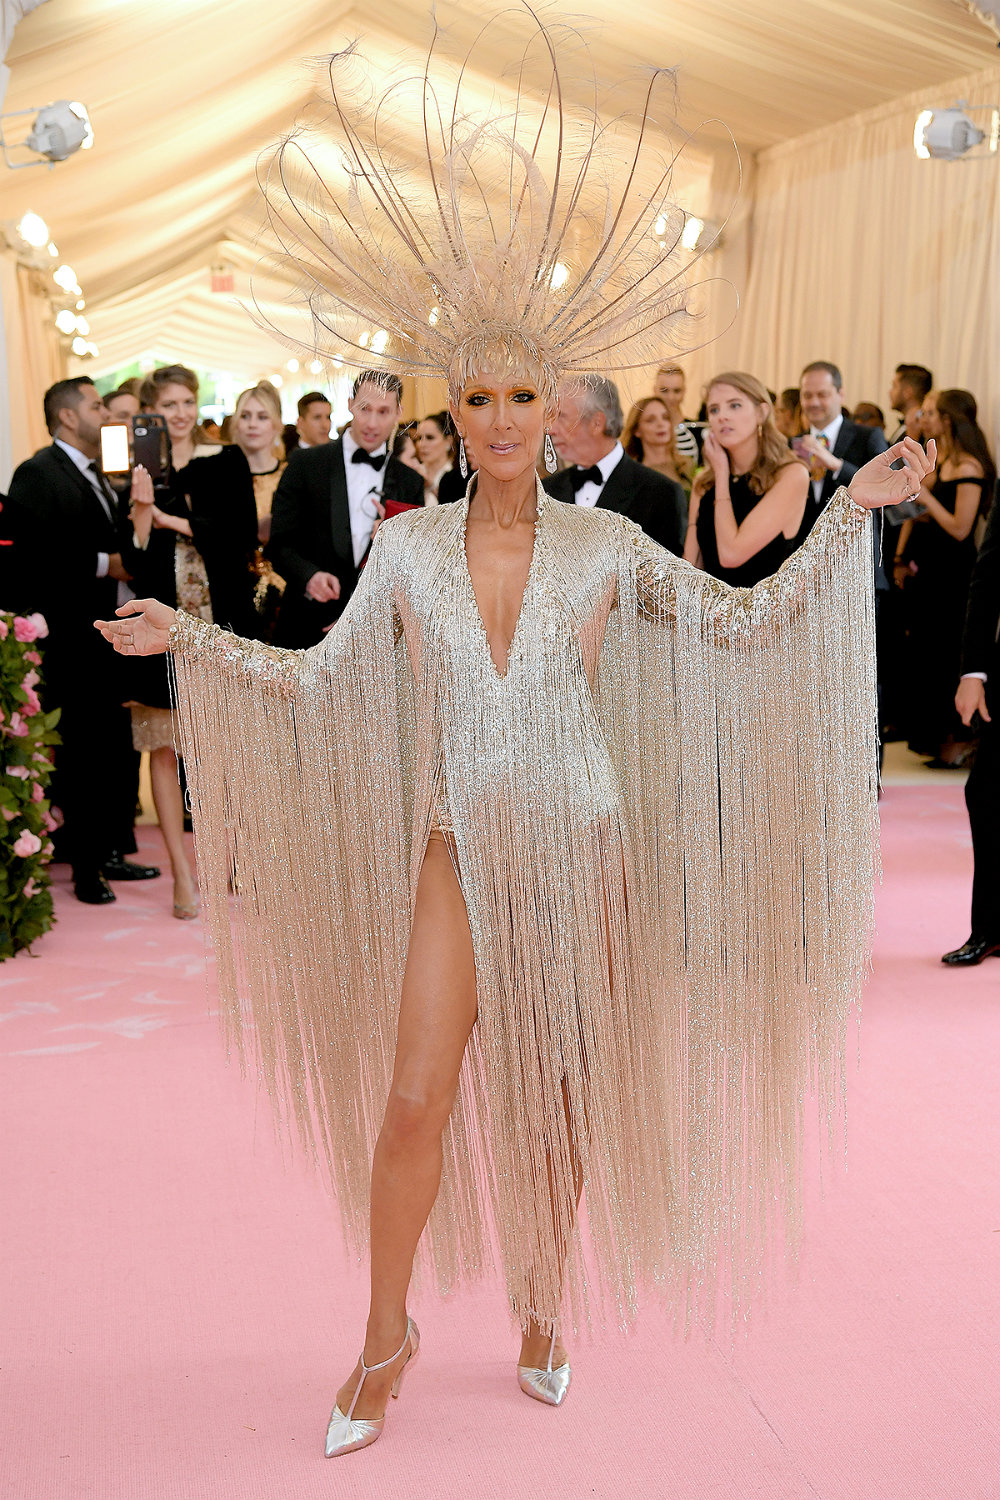 Met Gala 2019 Red Carpet - The Best Dressed 06 met gala 2019 red carpet Met Gala 2019 Red Carpet – The Best Dressed Met Gala 2019 Red Carpet The Best Dressed 06